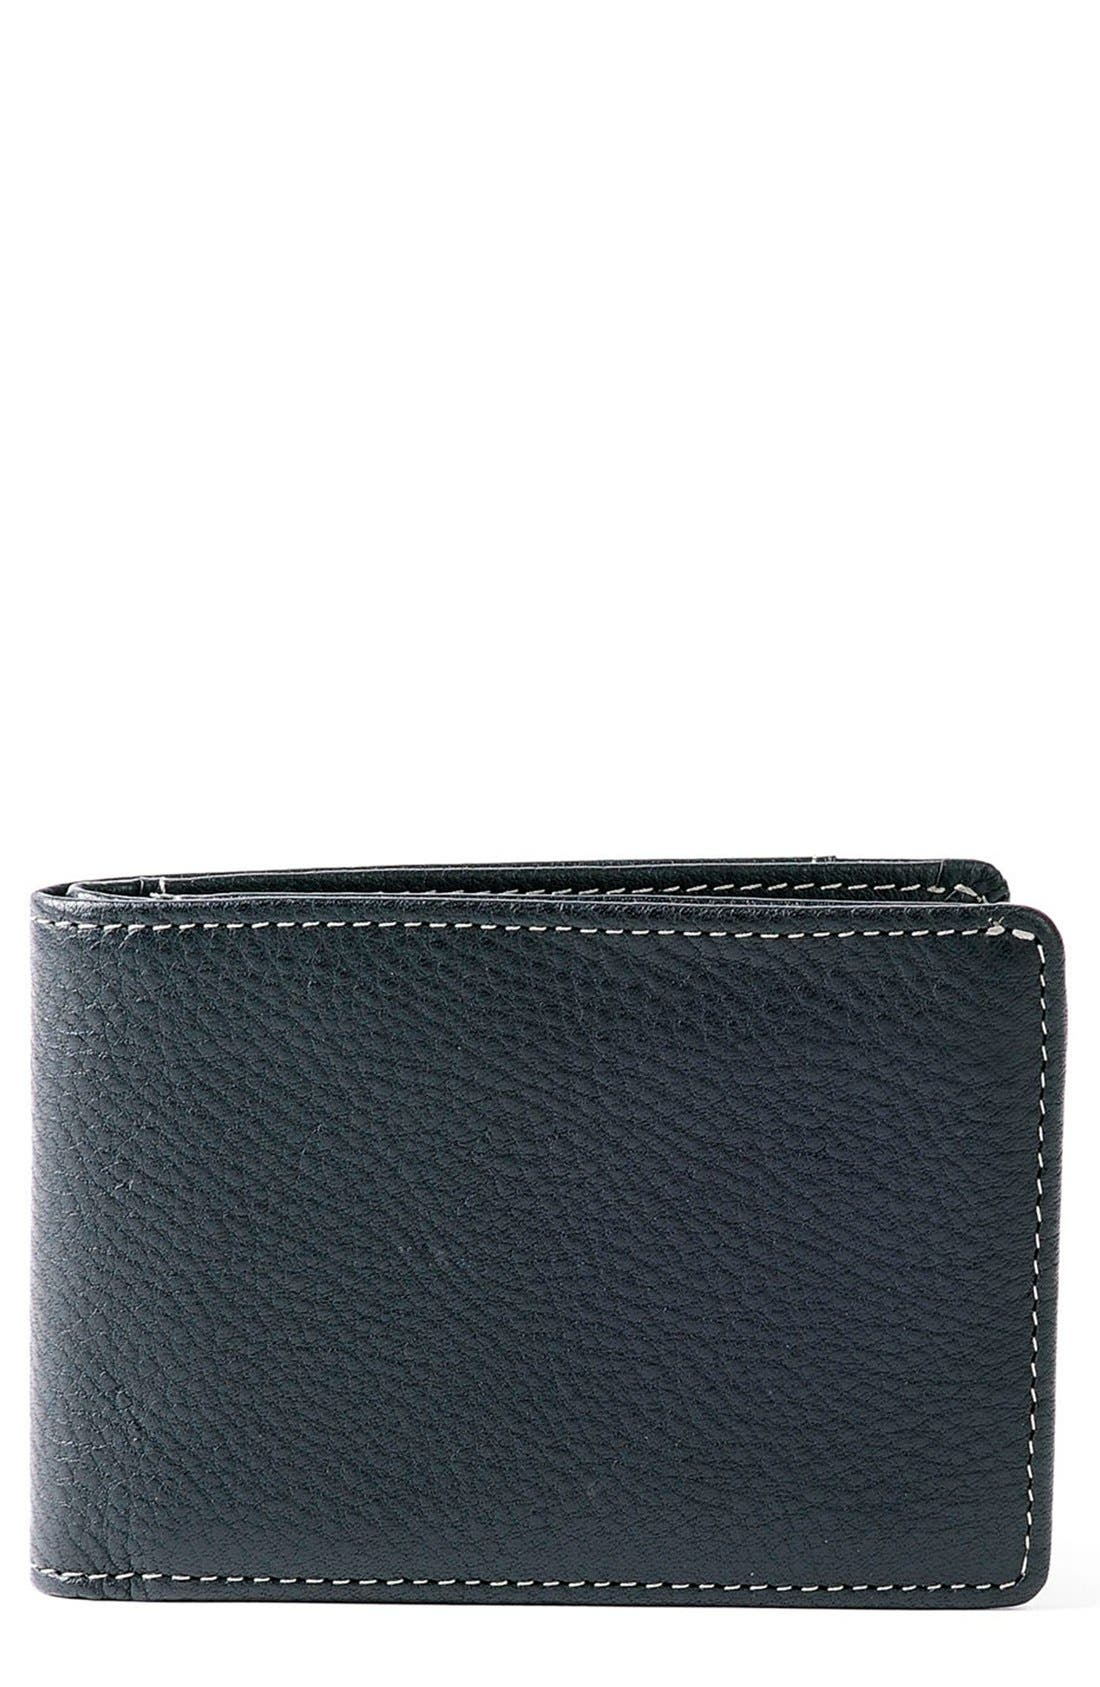 'Tyler' RFID Slimster Wallet,                         Main,                         color, Black